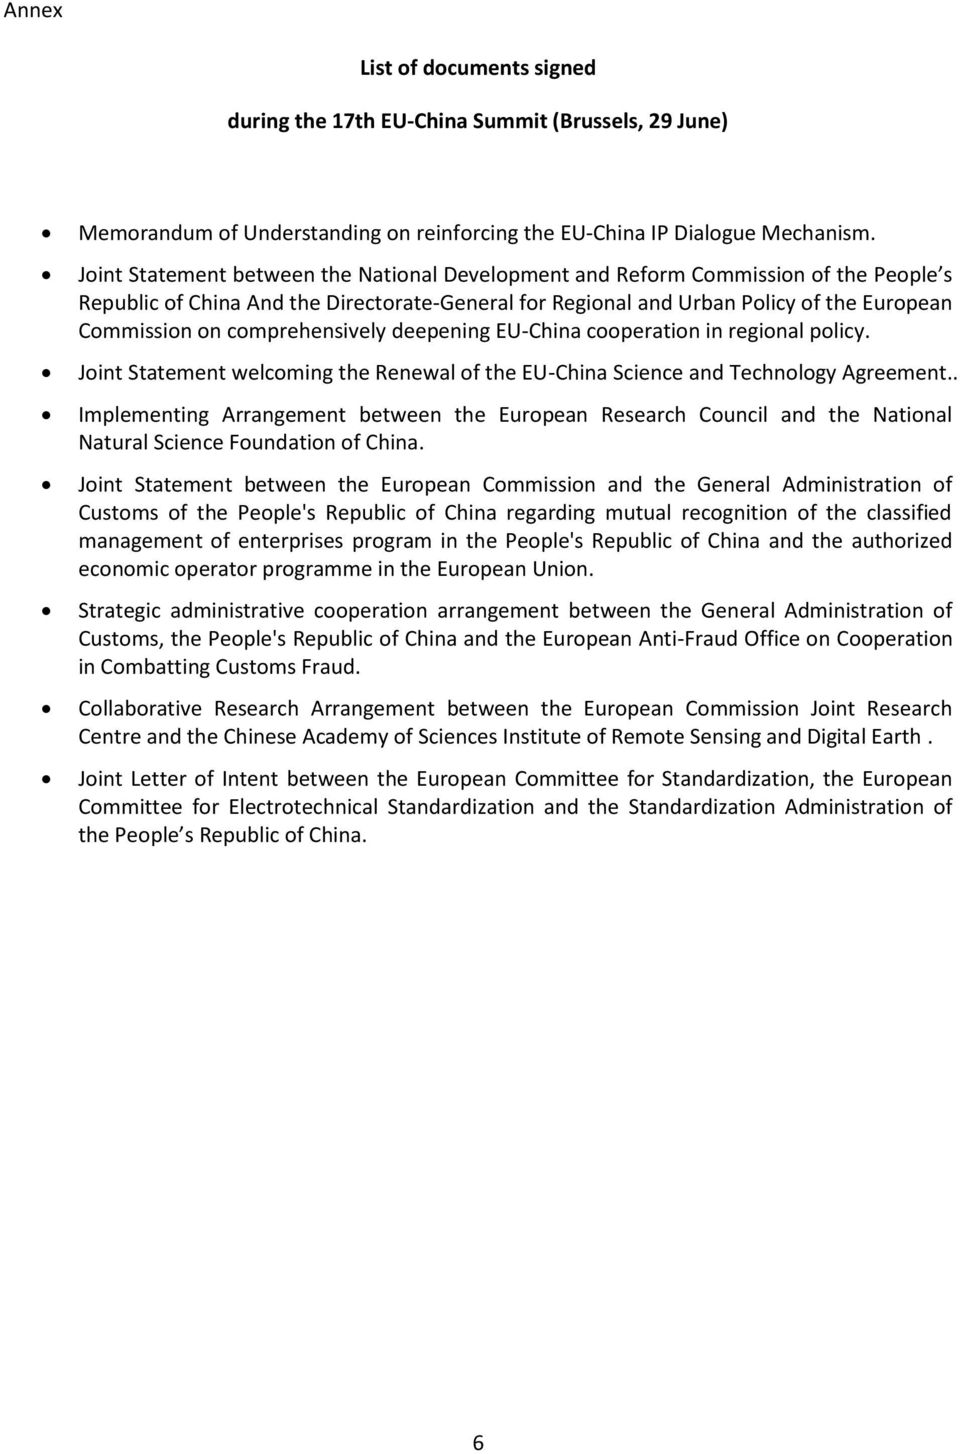 comprehensively deepening EU-China cooperation in regional policy. Joint Statement welcoming the Renewal of the EU-China Science and Technology Agreement.